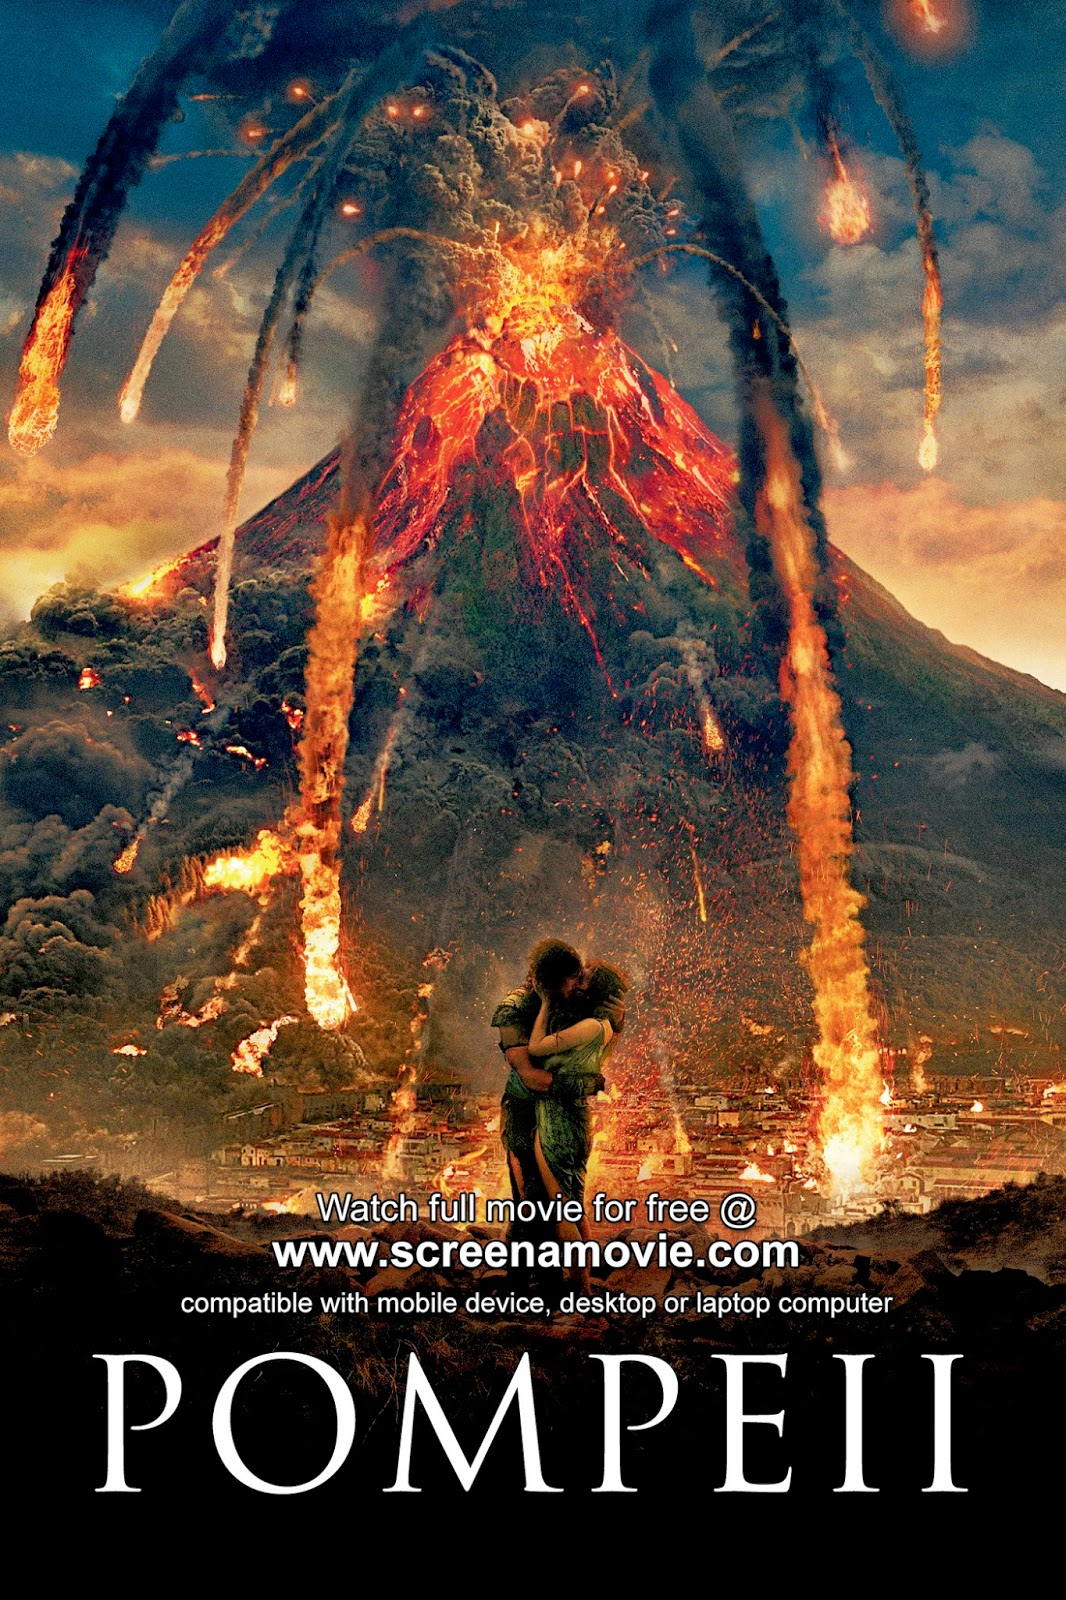 Pompeii_@screenamovie